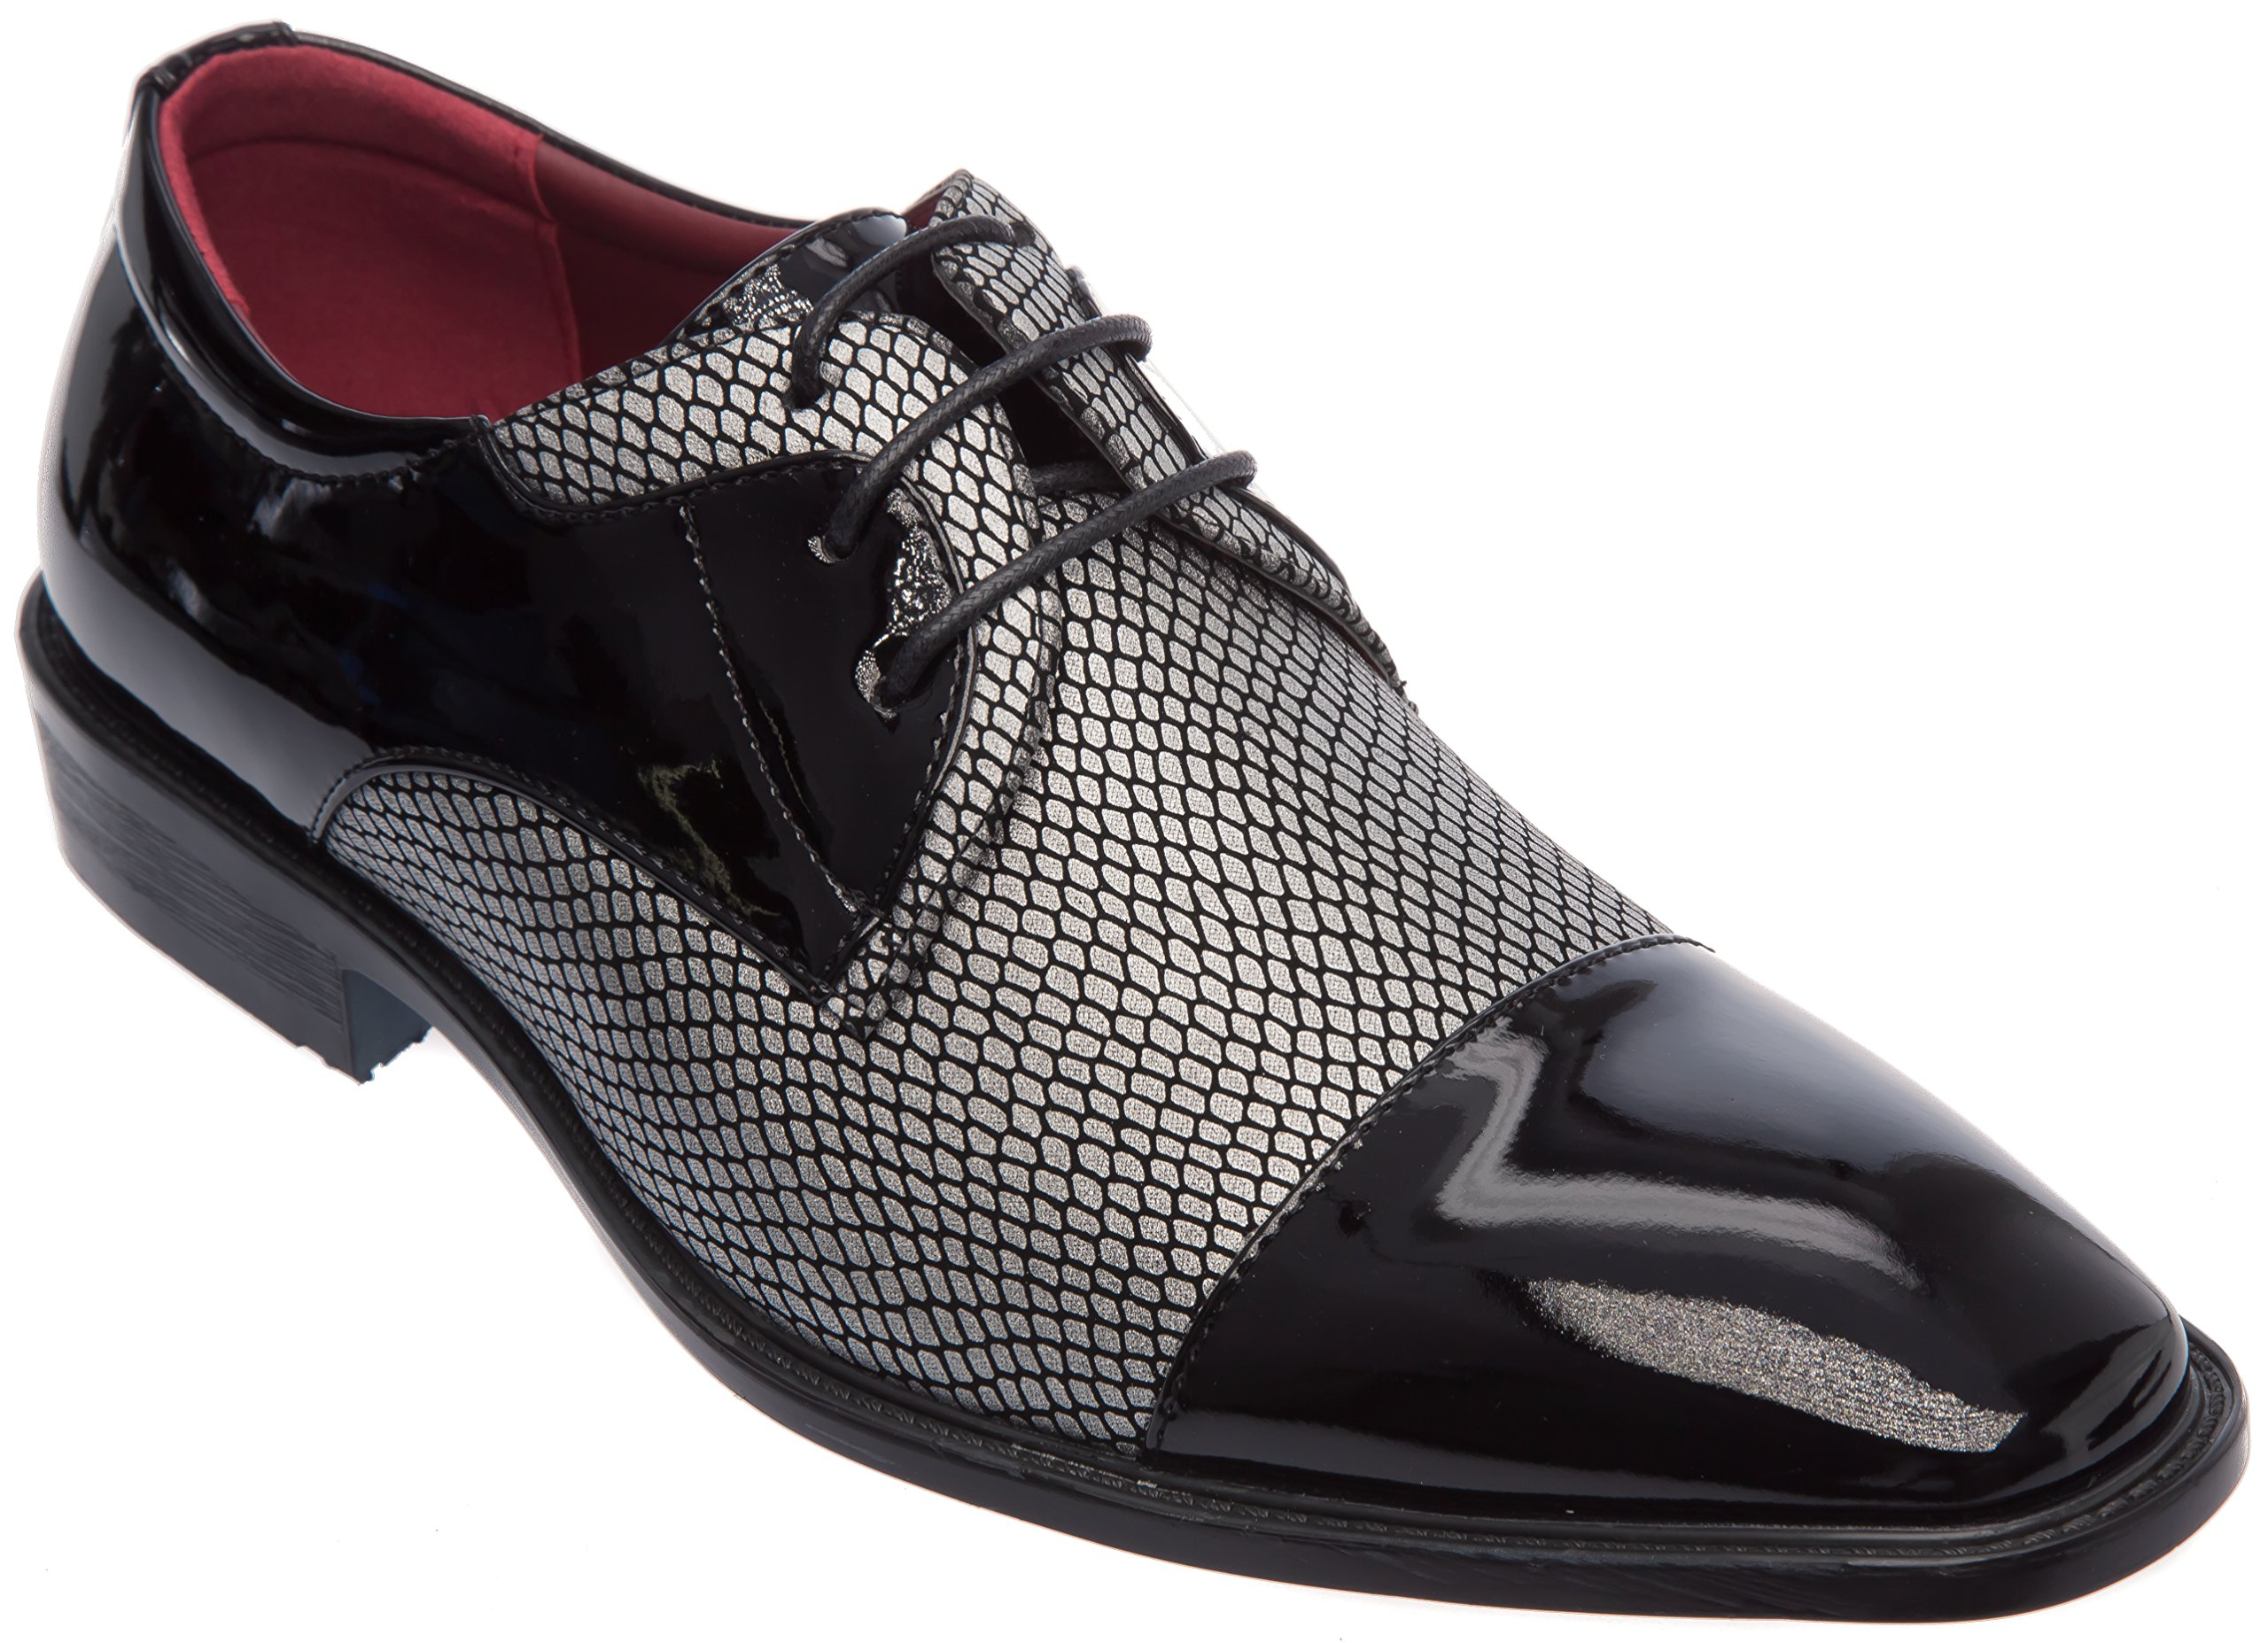 Alberto Fellini Mens Oxfords-Shoes Cap Toe Black Silver Patent Leather Size 9 Fashion Or Formal Business Dress